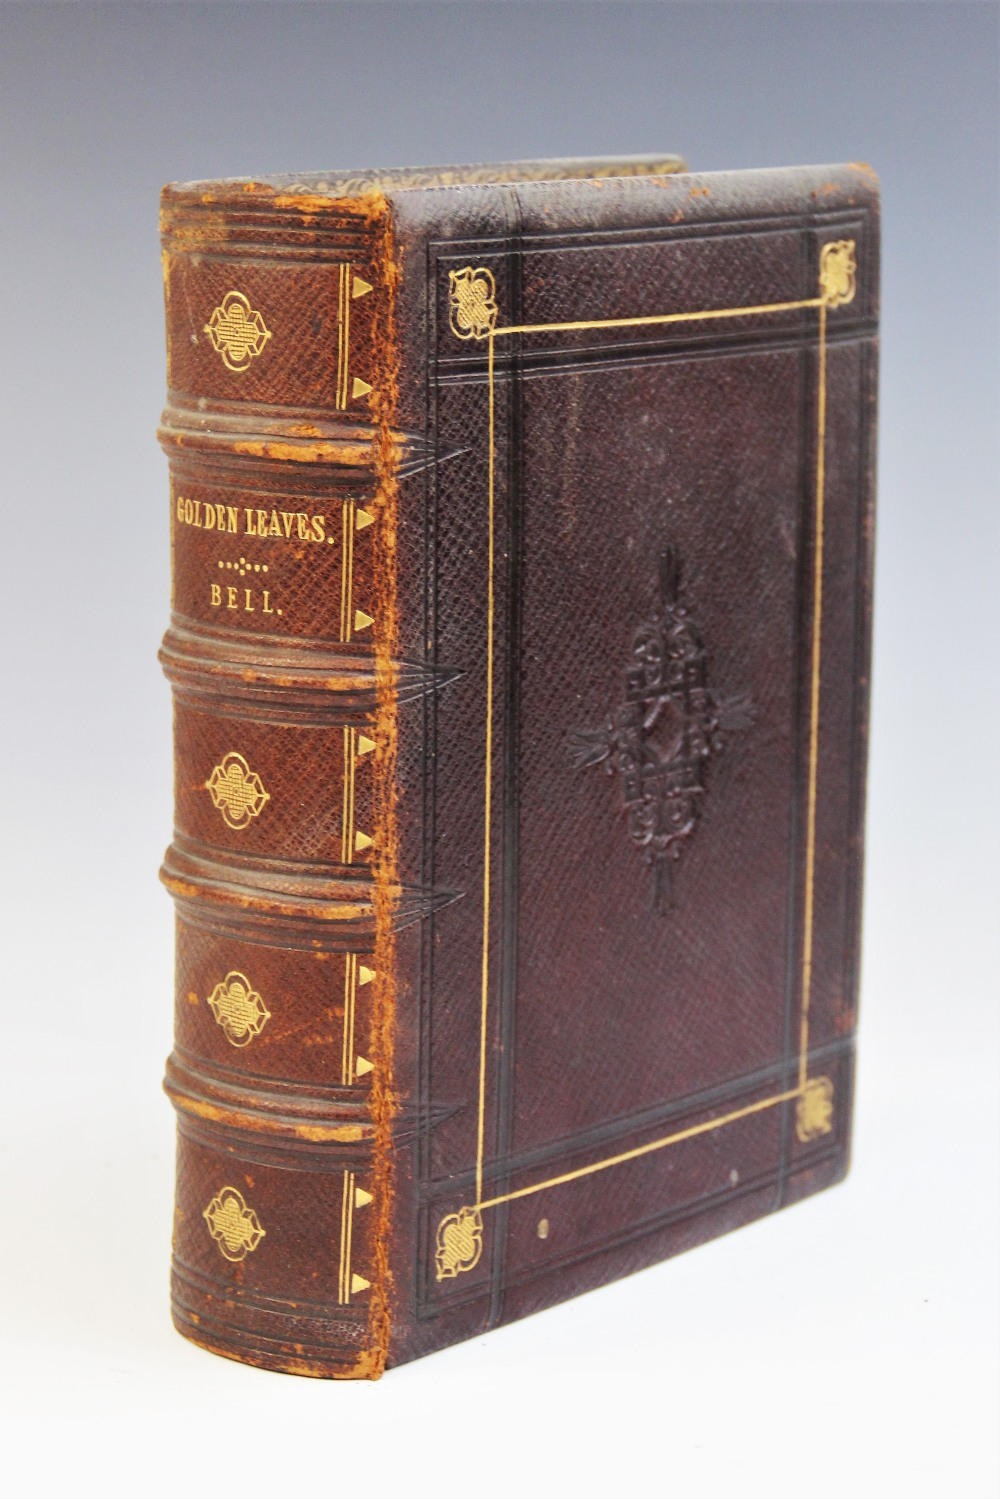 Bell (R), GOLDEN LEAVES FROM THE WORKS OF THE POETS AND PAINTERS, first edition, full leather,